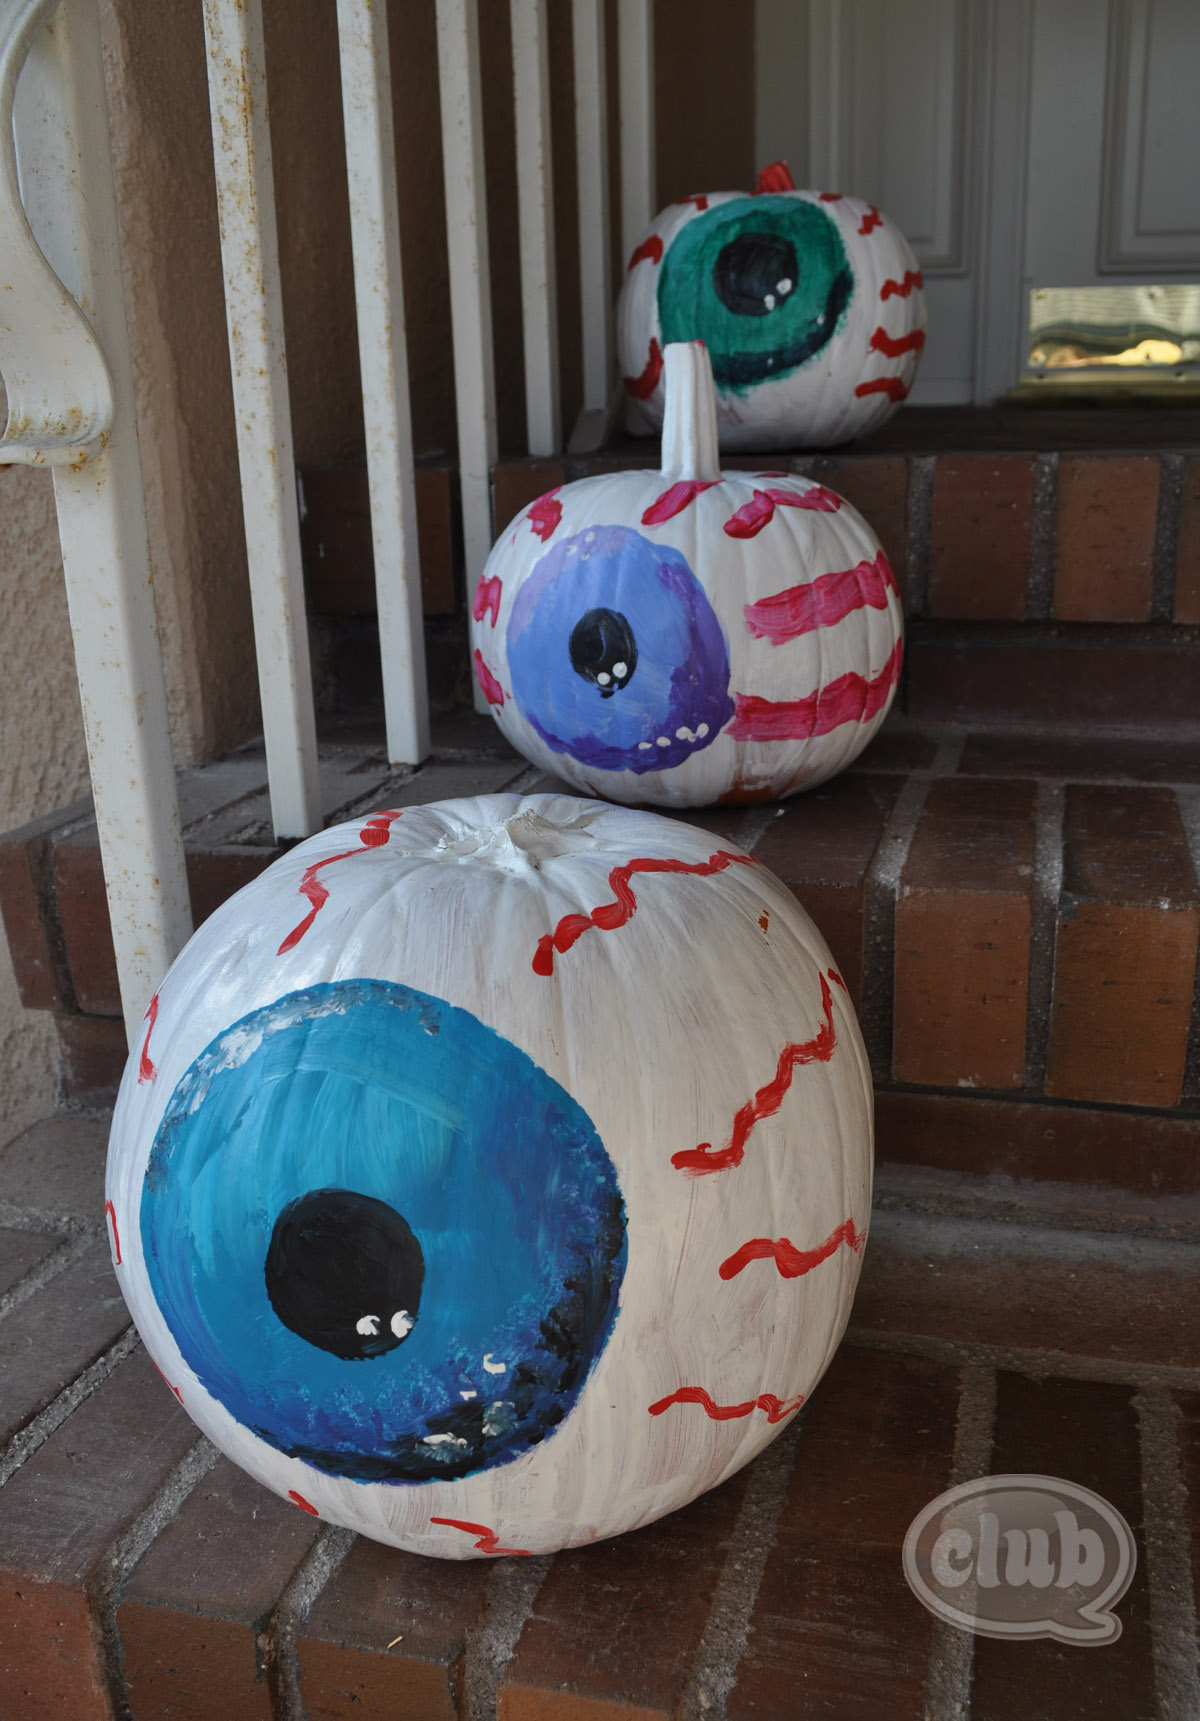 Eyeball painted pumpkins diy Funny pumpkin painting ideas